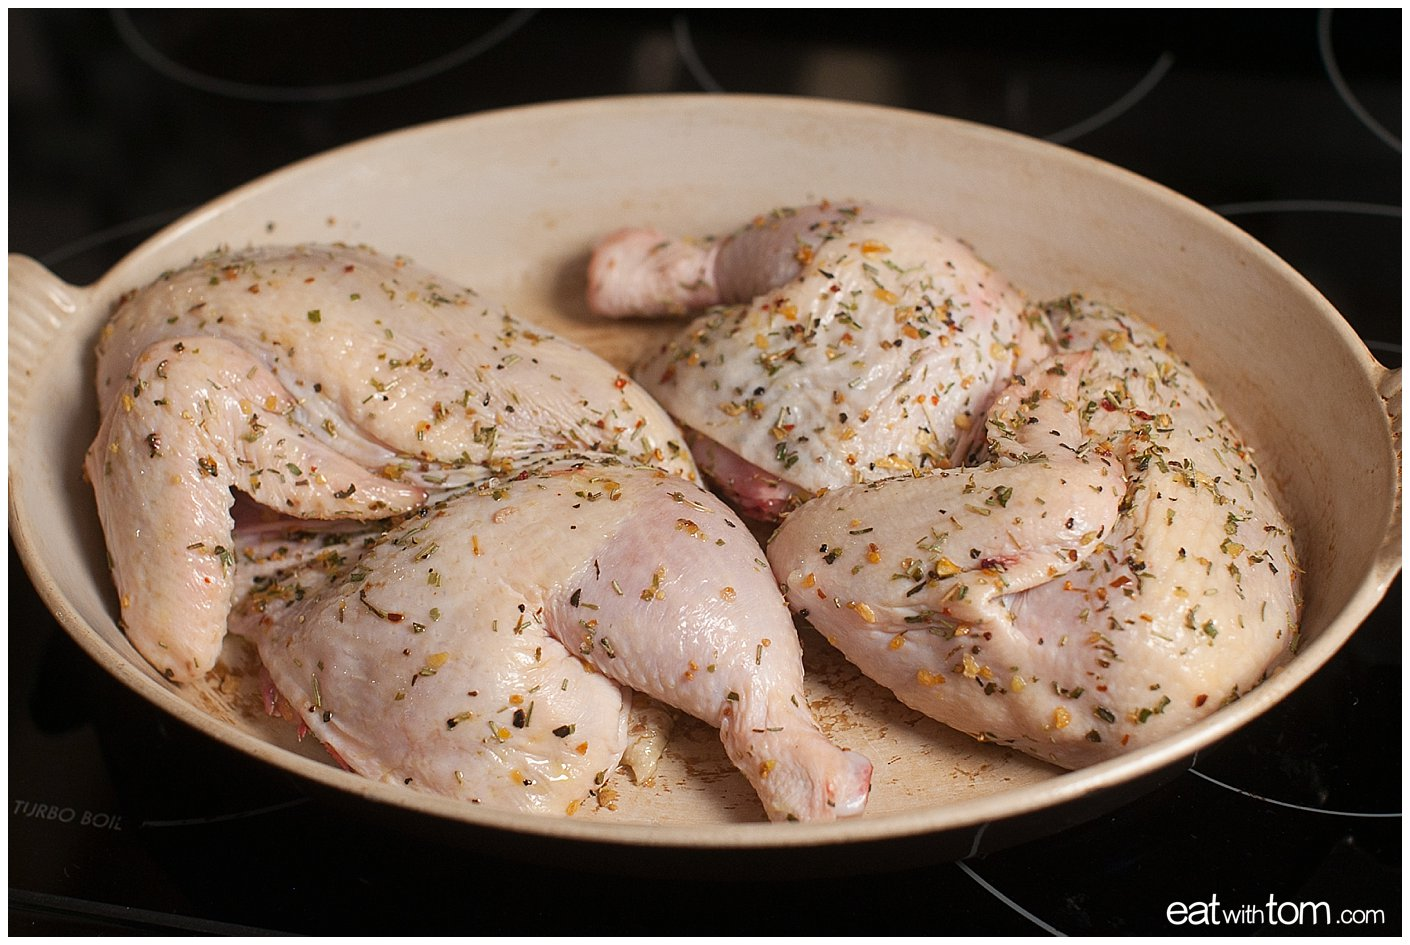 Dating advice for men in their 20s, cook a chicken